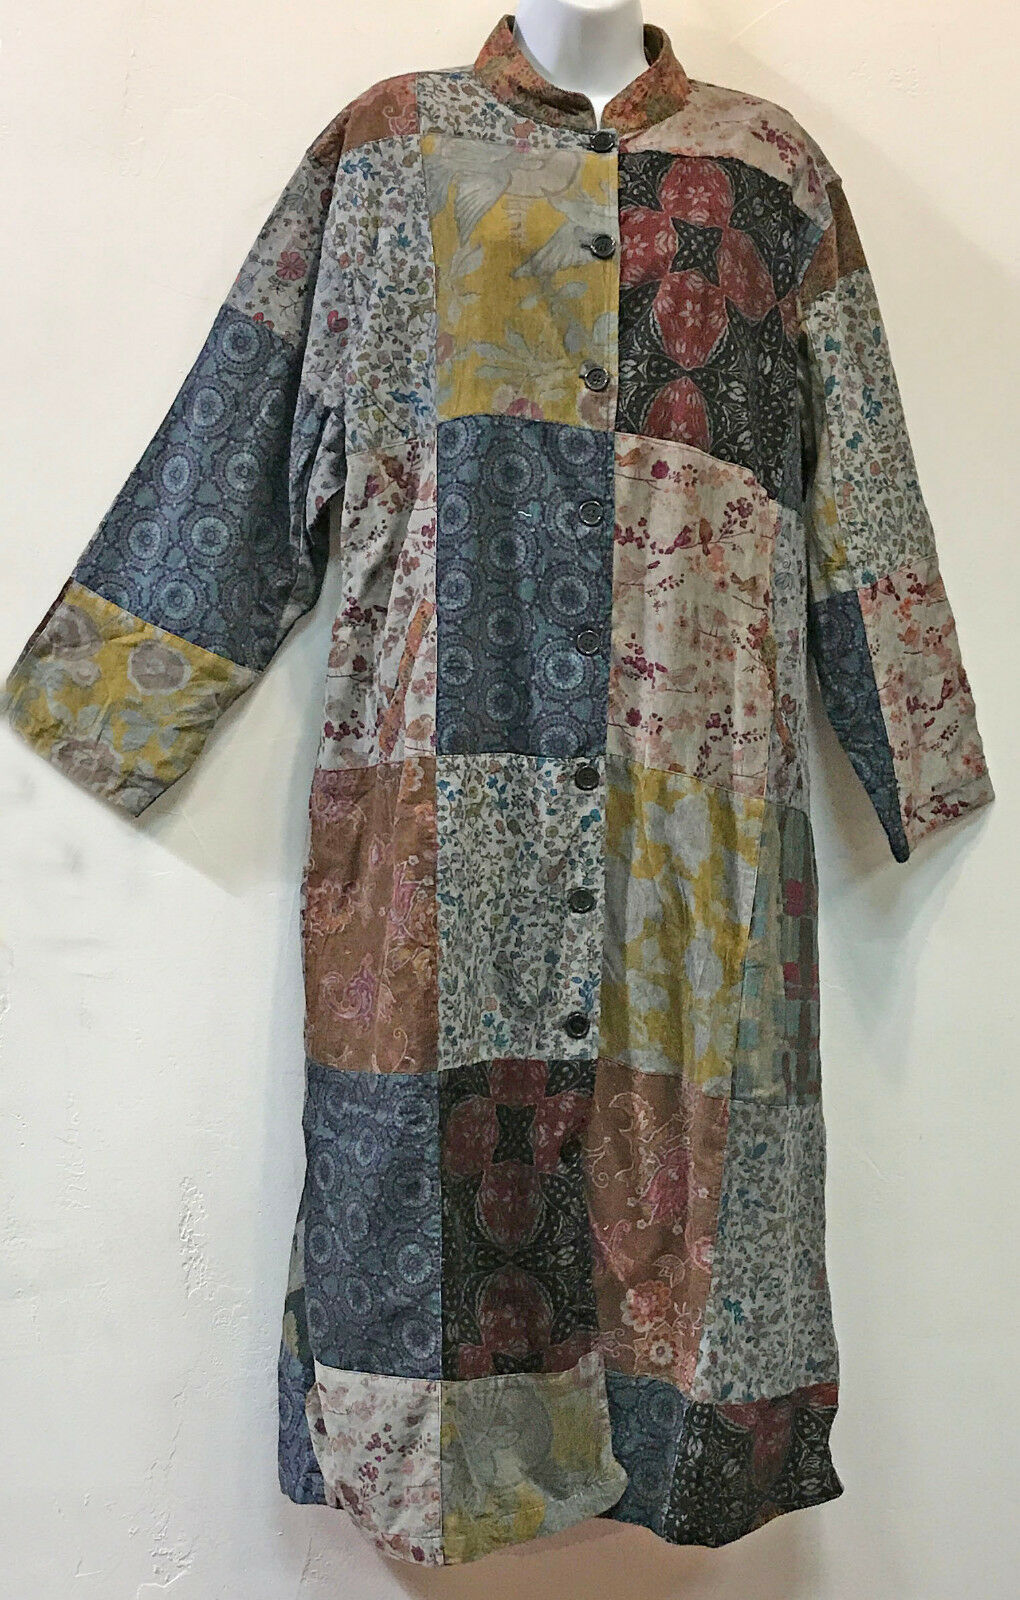 Nwt FUNKY STUFF patch patch patch corduroy cotton lagenlook boho DUSTER COAT + SCARF 2X 22W a76144